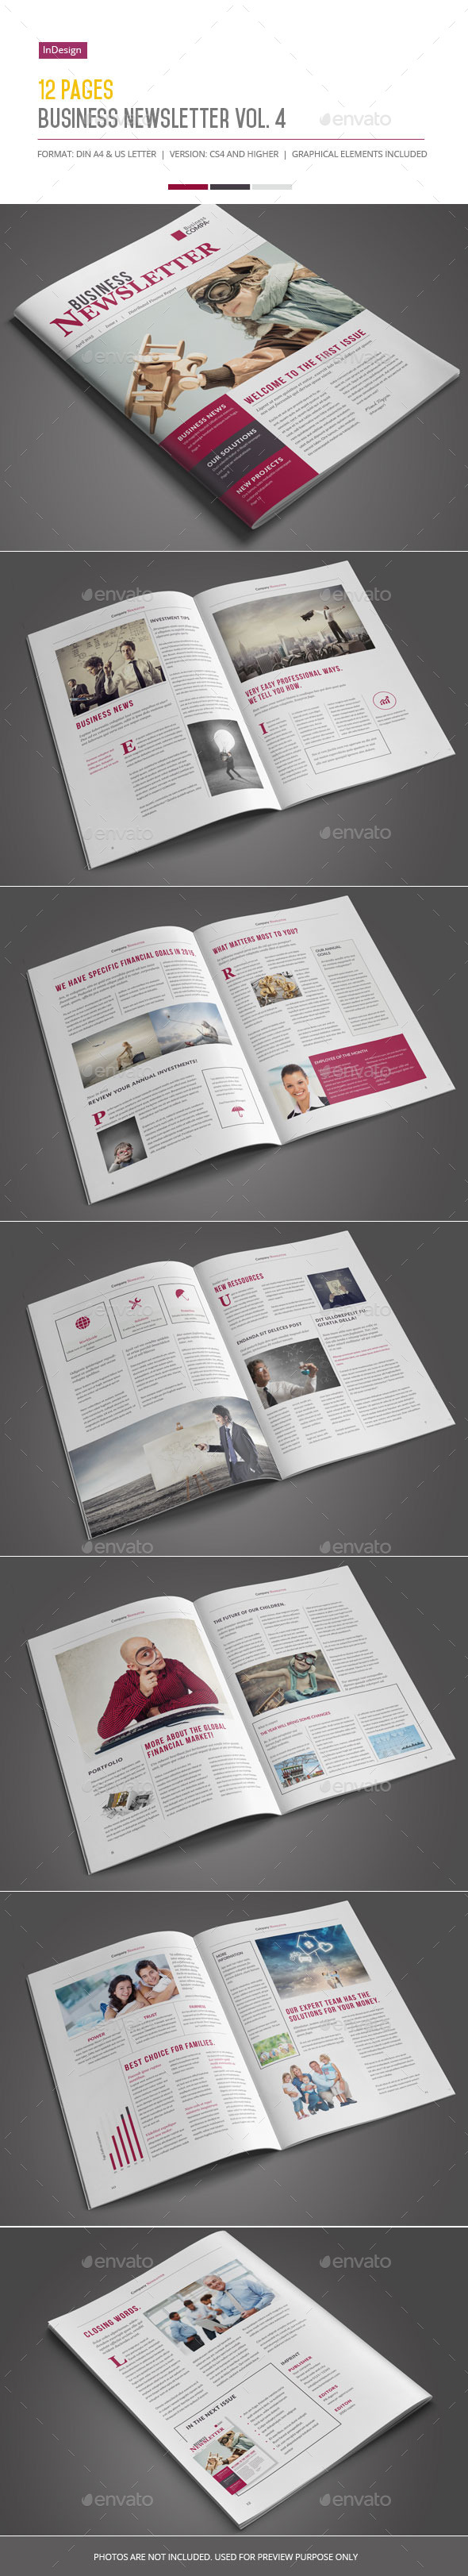 GraphicRiver Business Newsletter Vol 4 11142639